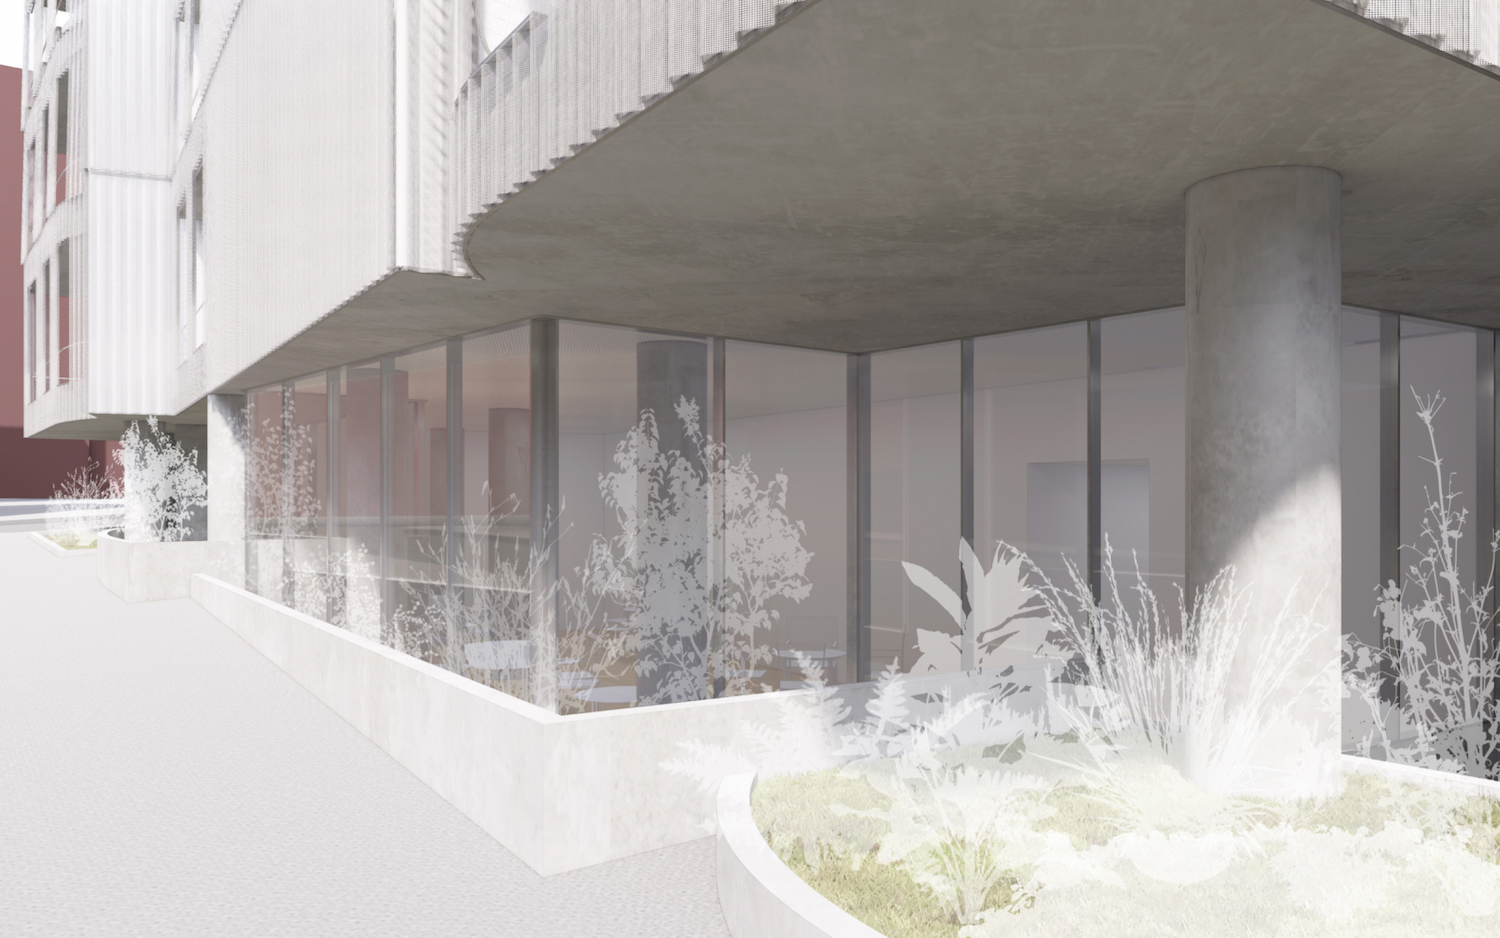 Rendering of Ground Floor at 219 Jay Street. Courtesy of Tankhouse Development